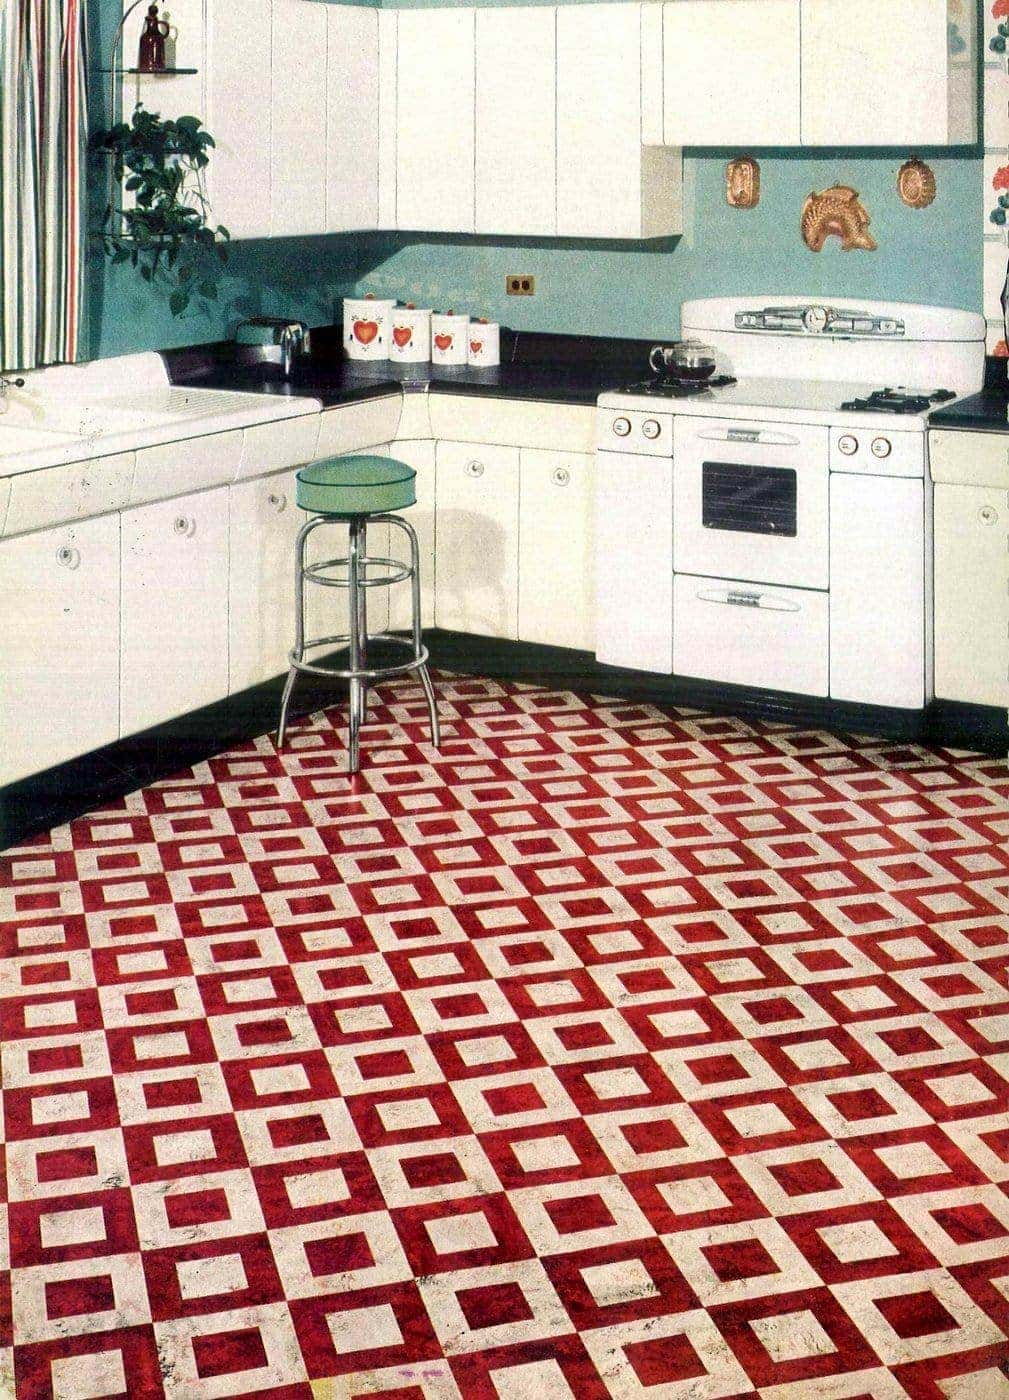 Vintage Bird Duo-tone flooring from 1951